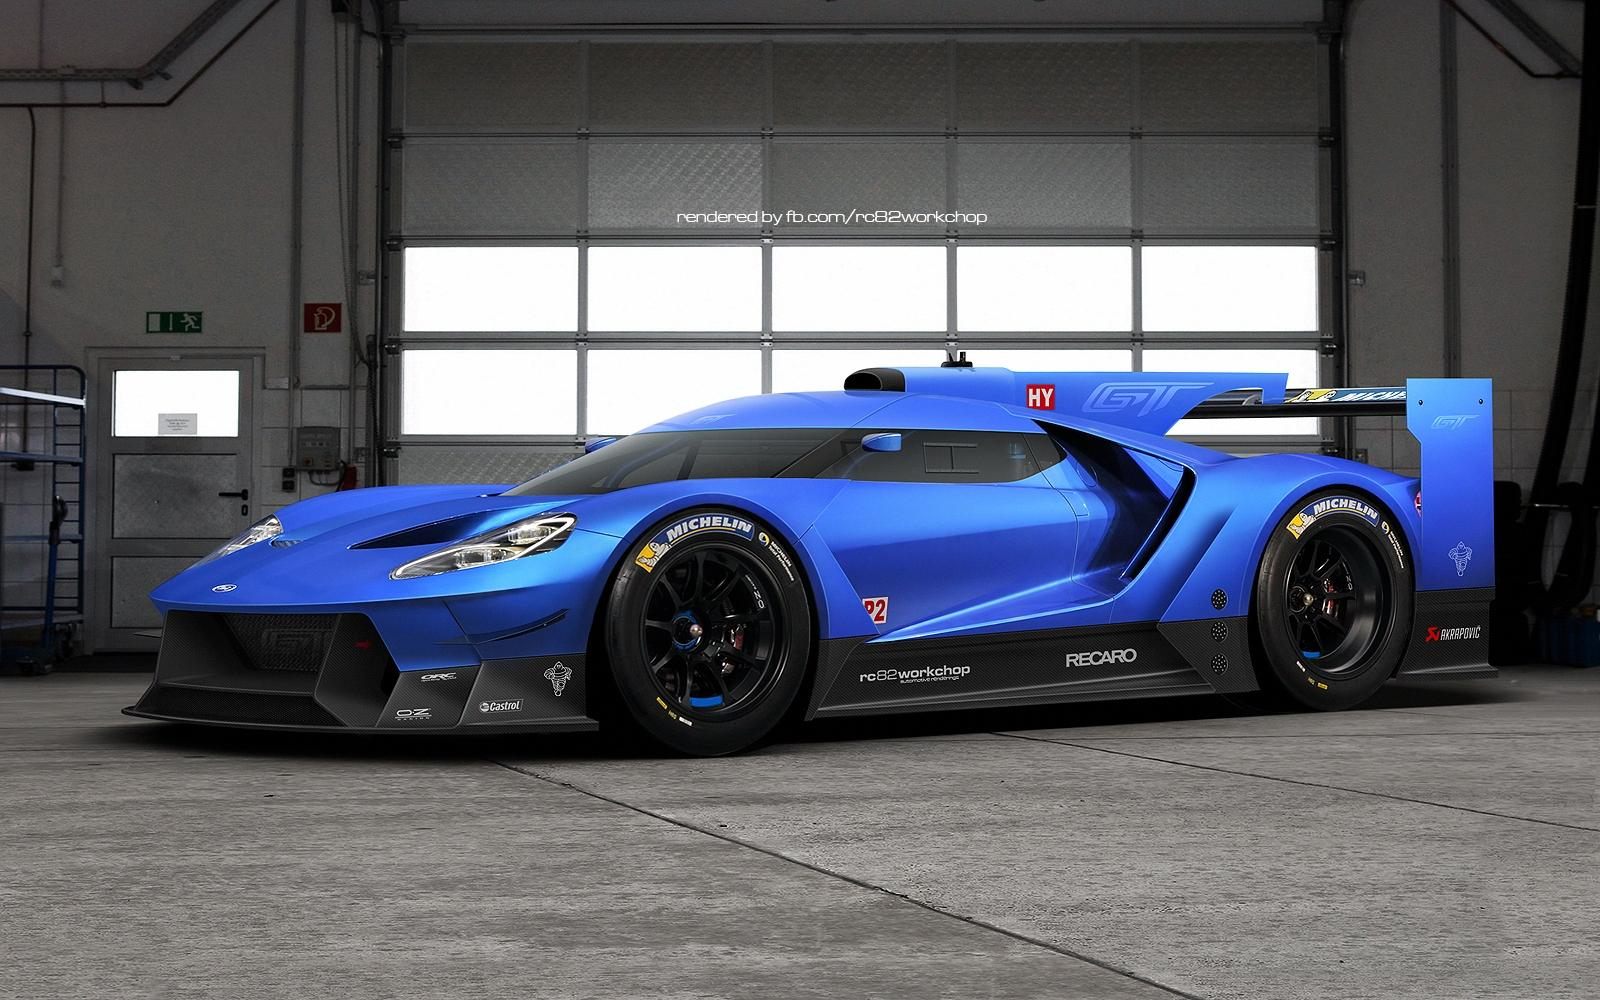 ford gt rendering could preview future le mans car digital trends. Black Bedroom Furniture Sets. Home Design Ideas